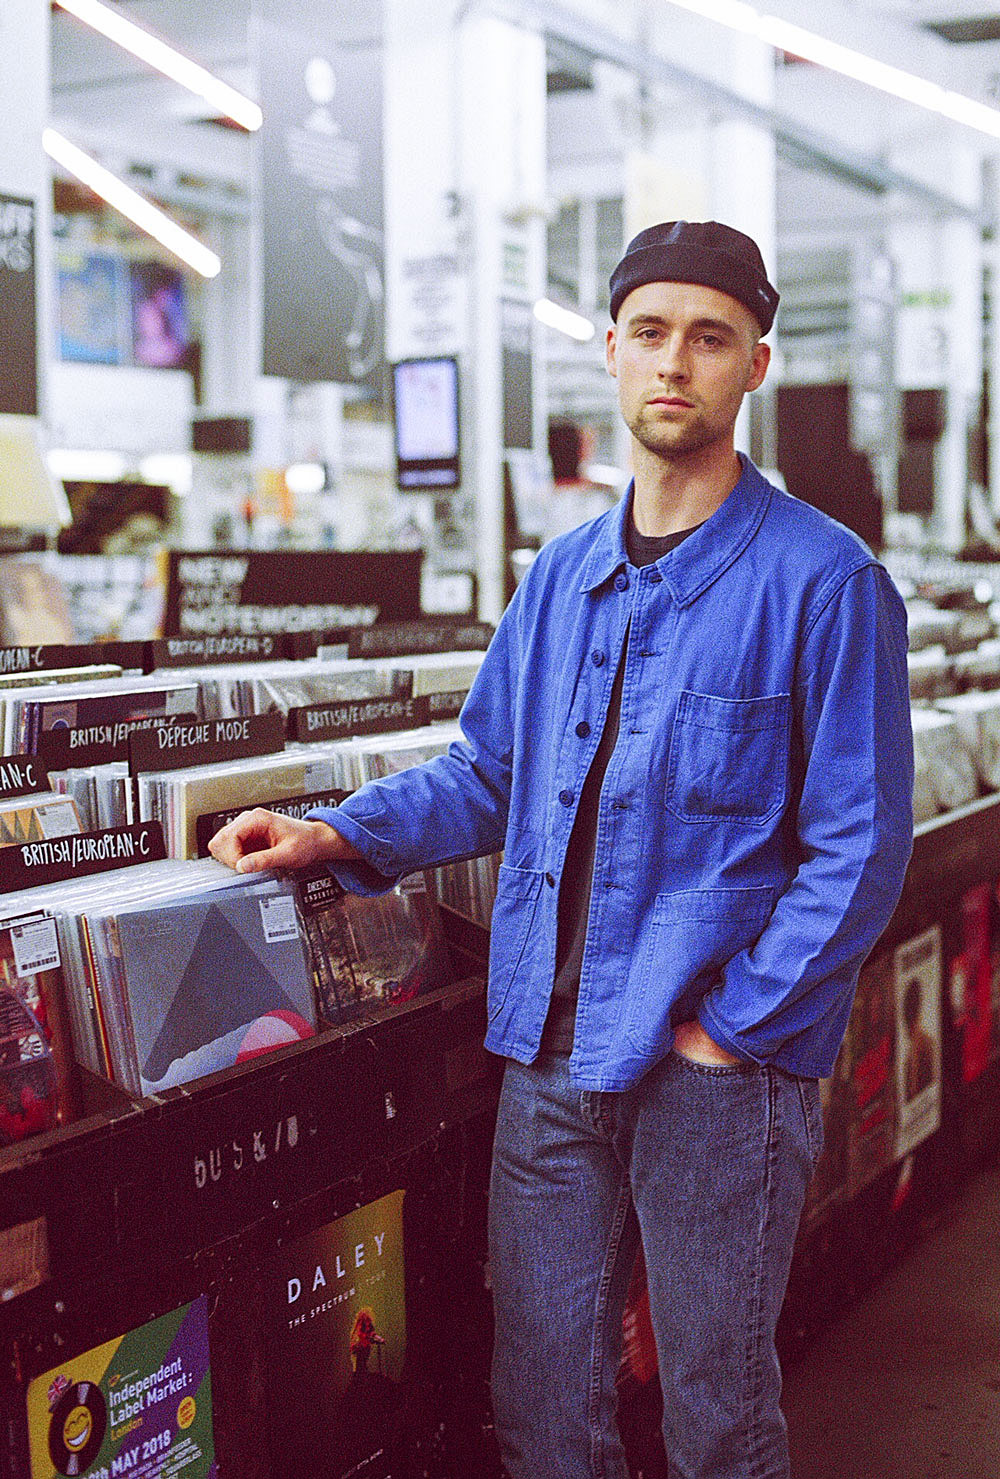 Record Shopping With... Haux